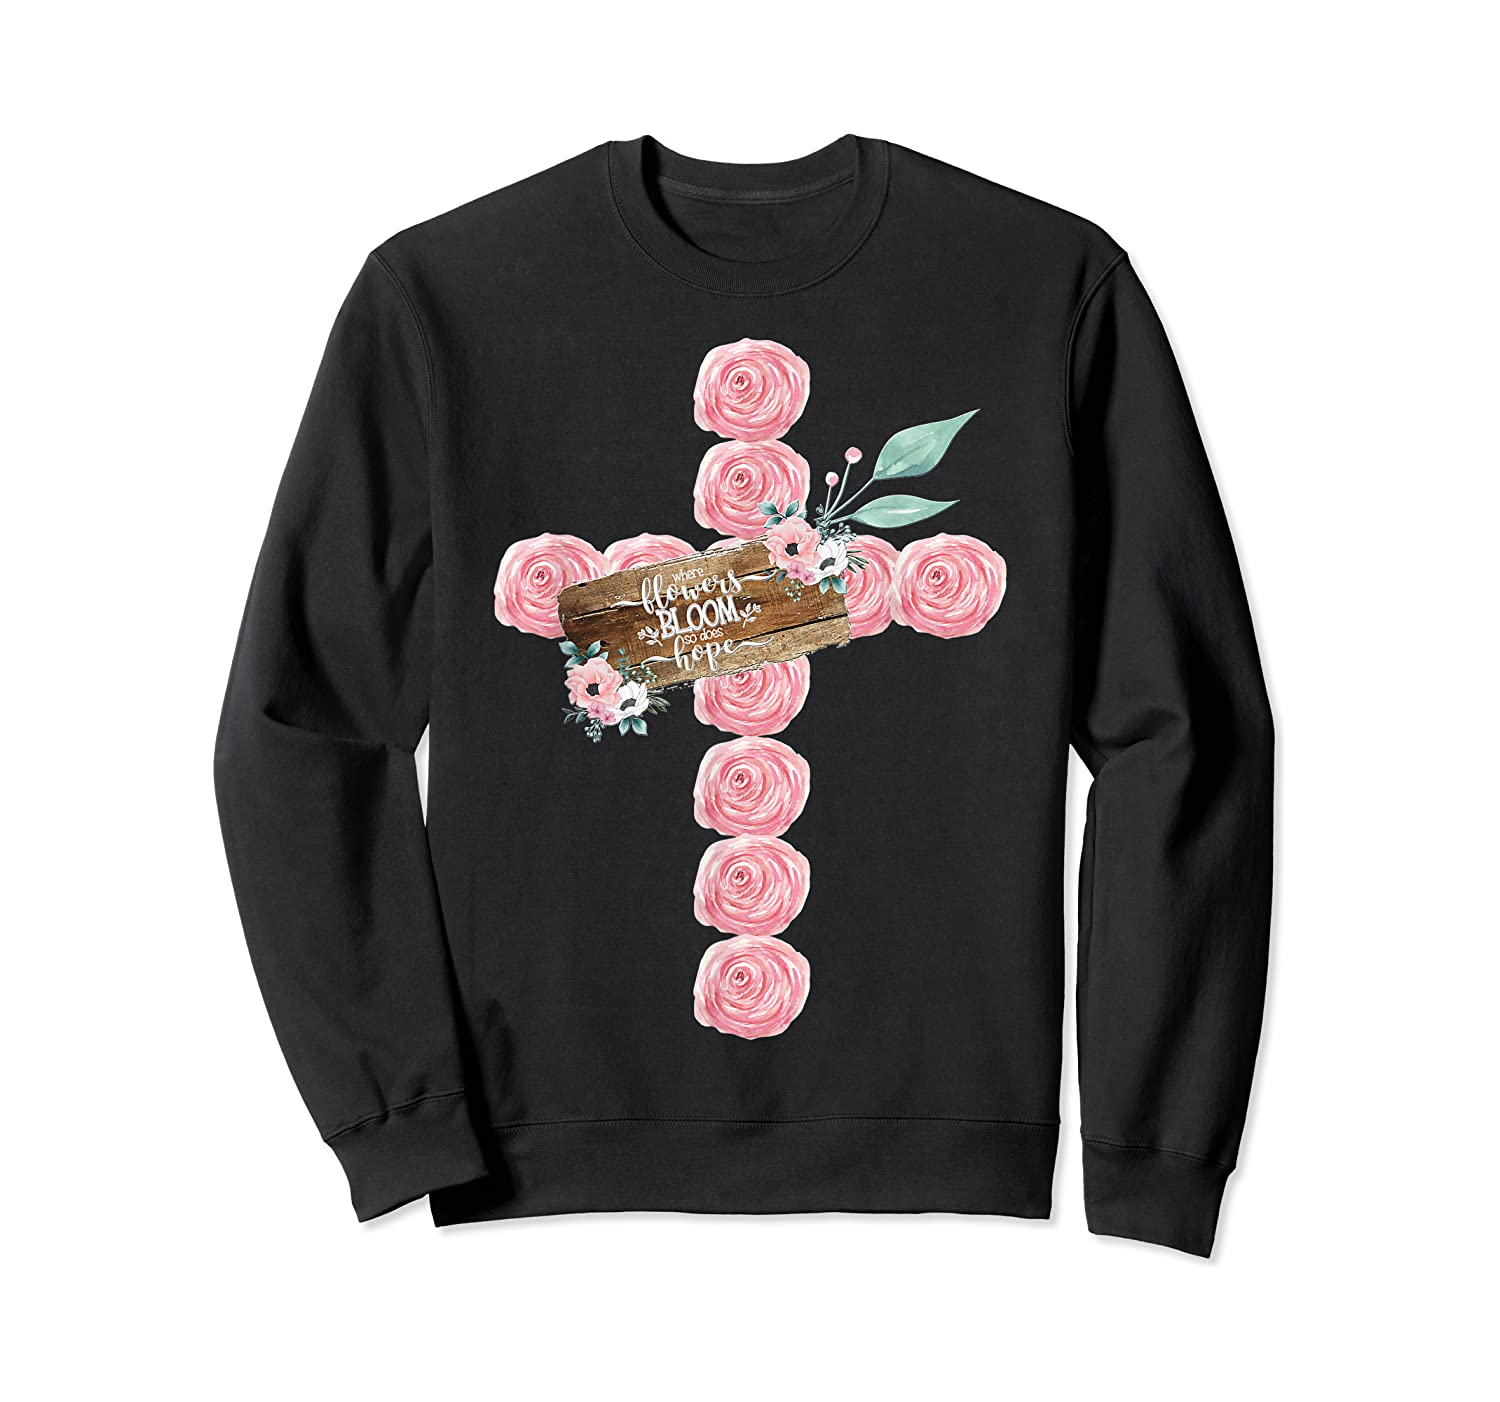 Where Flowers Bloom So Does Hope Floral Christian Cross Shirts Crewneck Sweater